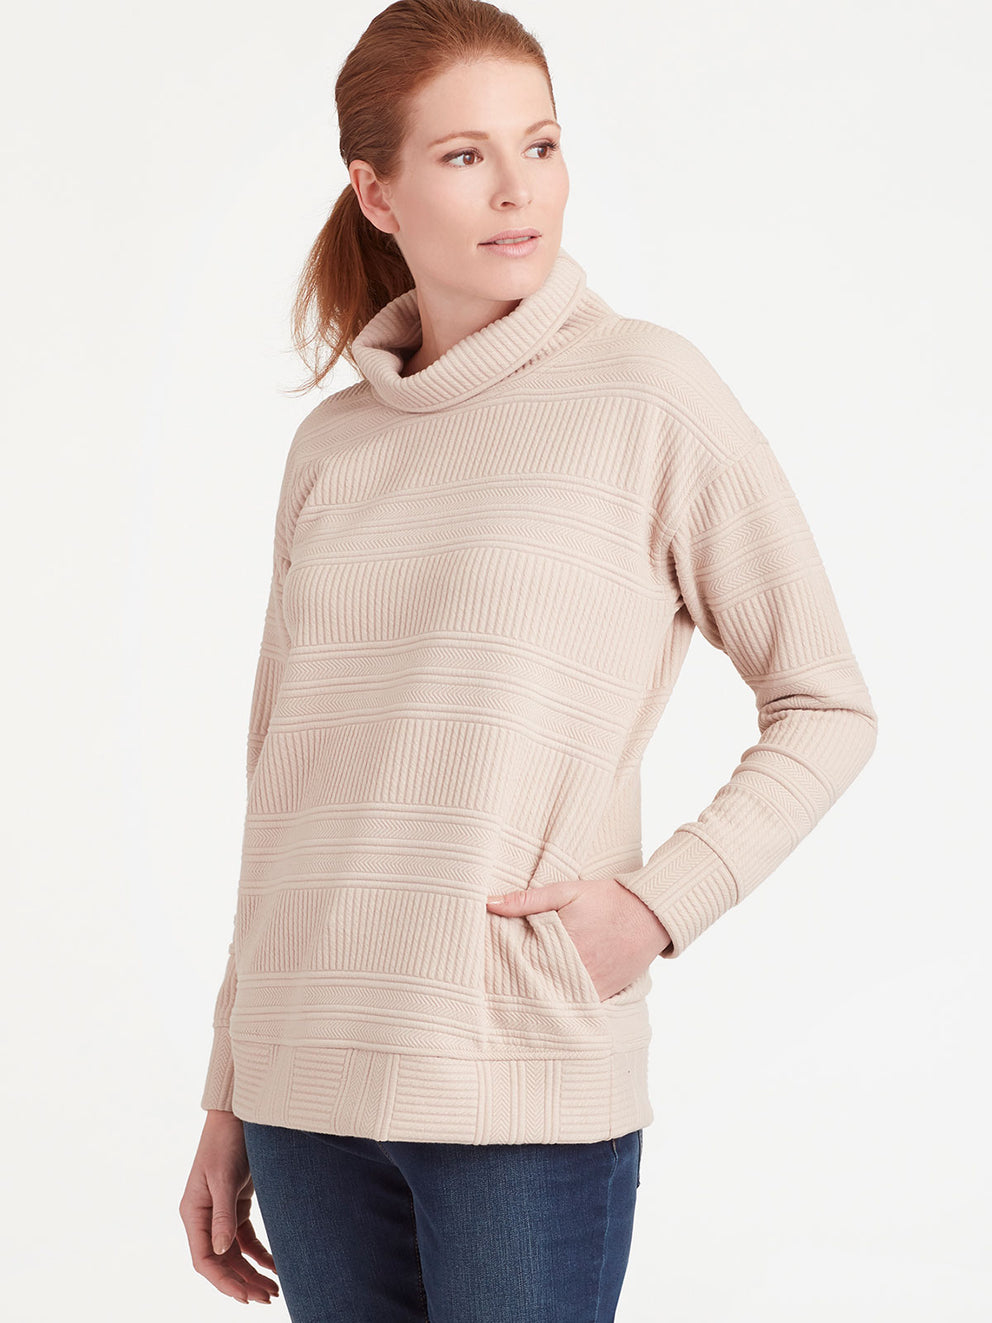 The Jones New York Quilted Turtleneck in color Pebble - Image Position 2